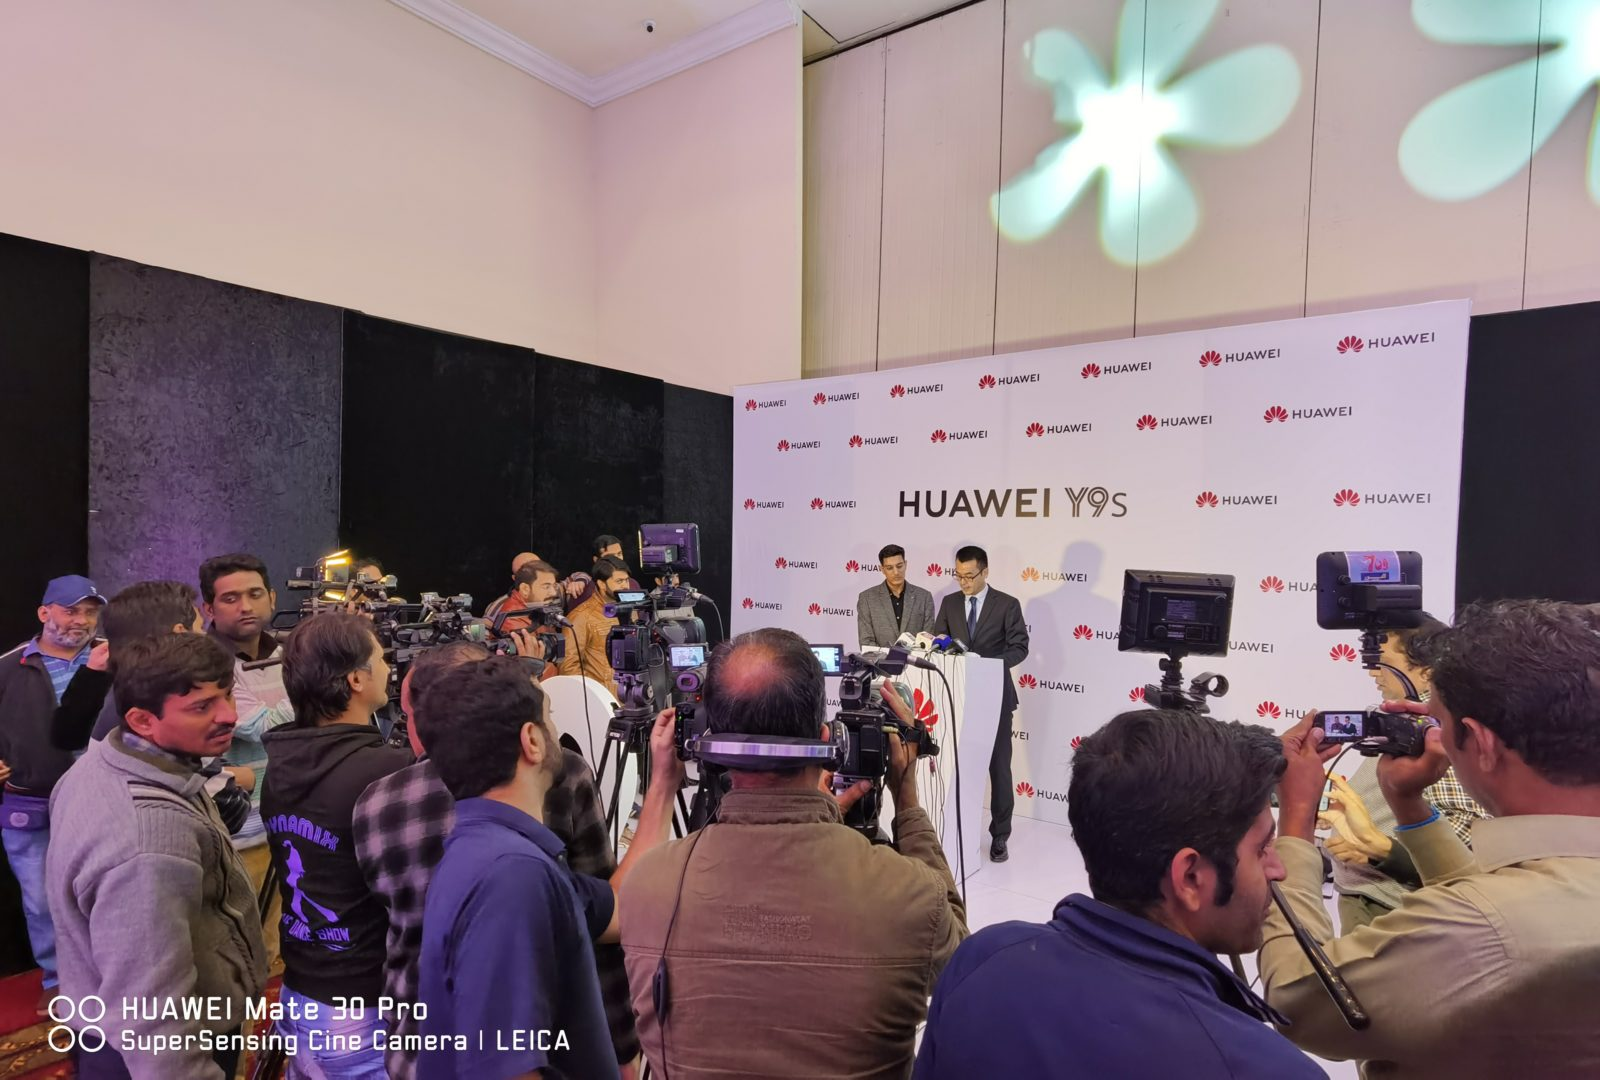 Huawei Launches the Y9s in Pakistan